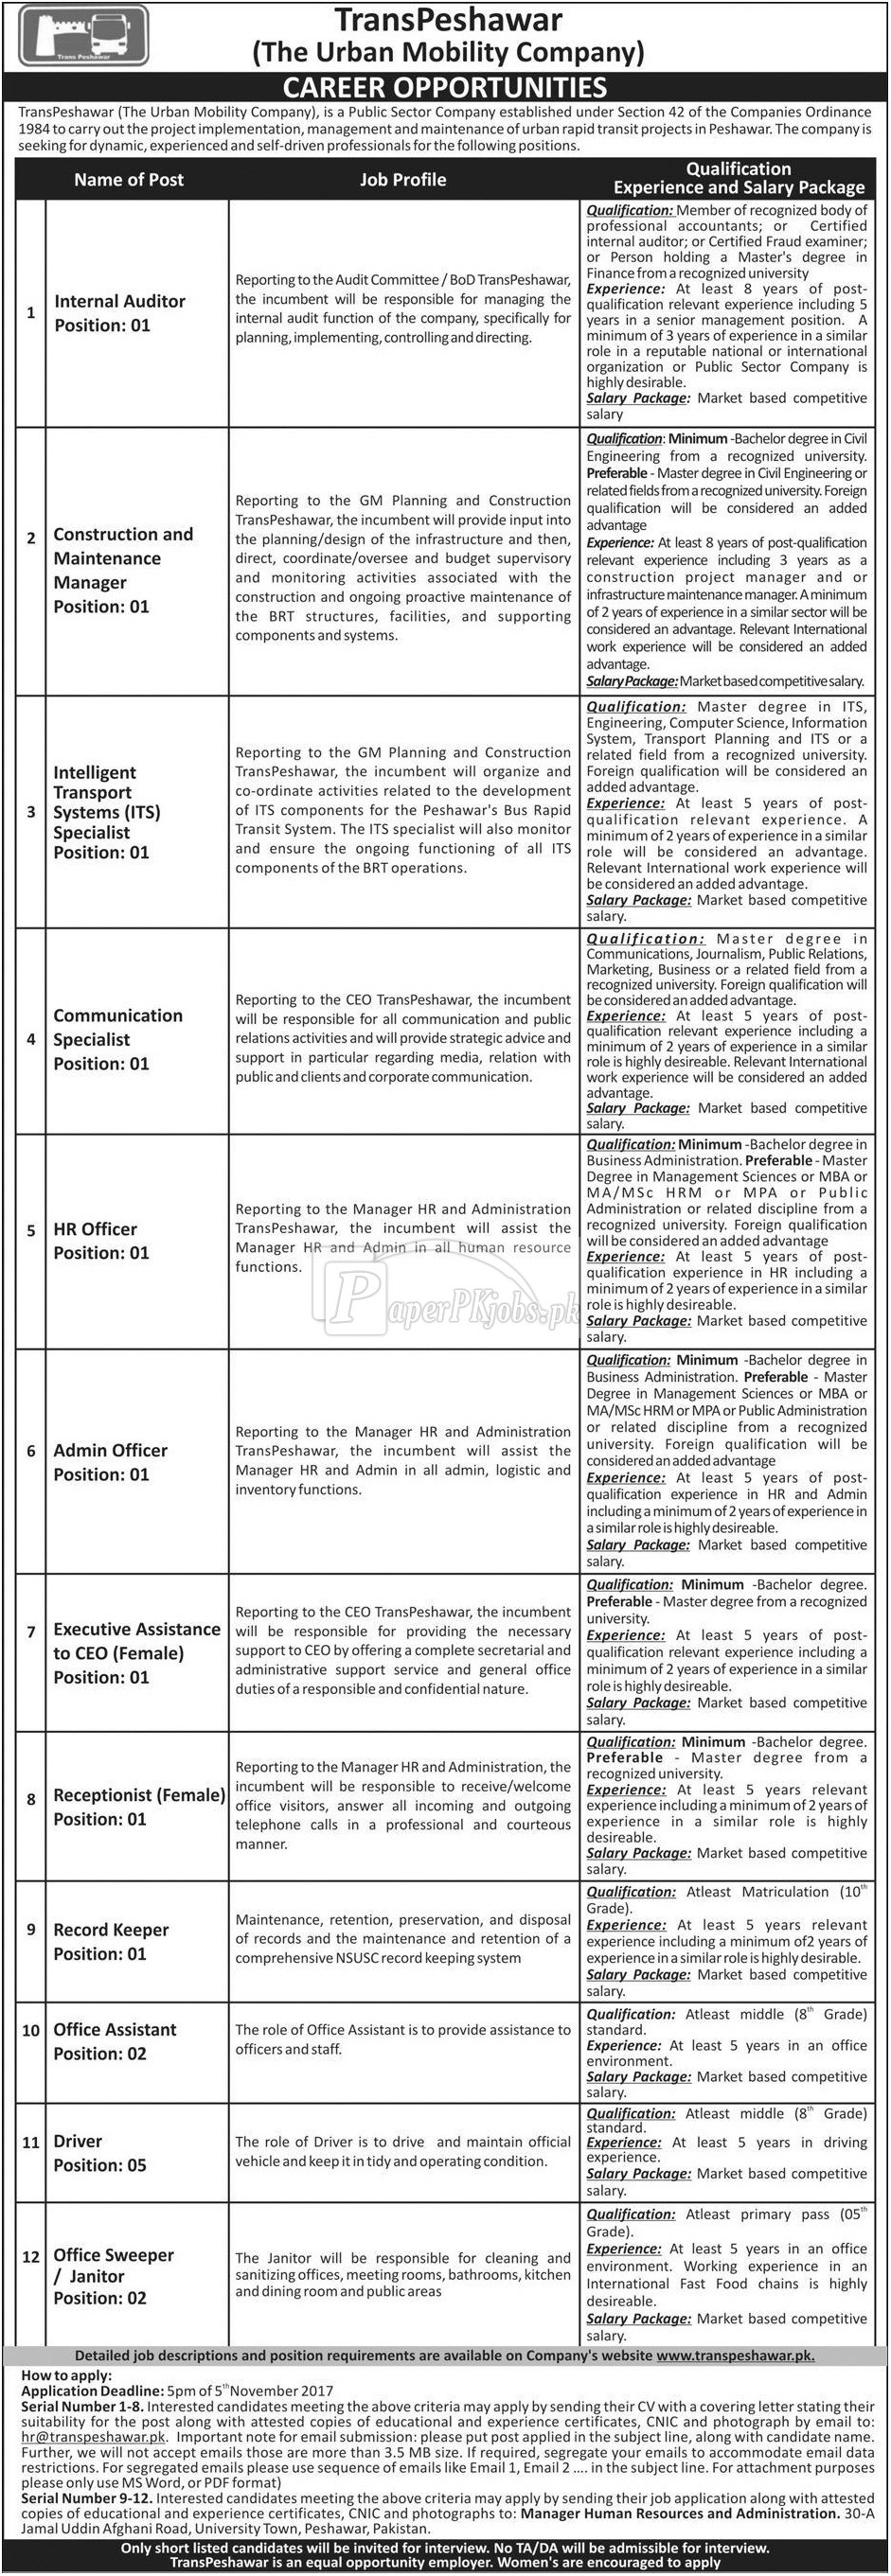 TransPeshawar The Urban Mobility Company Jobs 2017